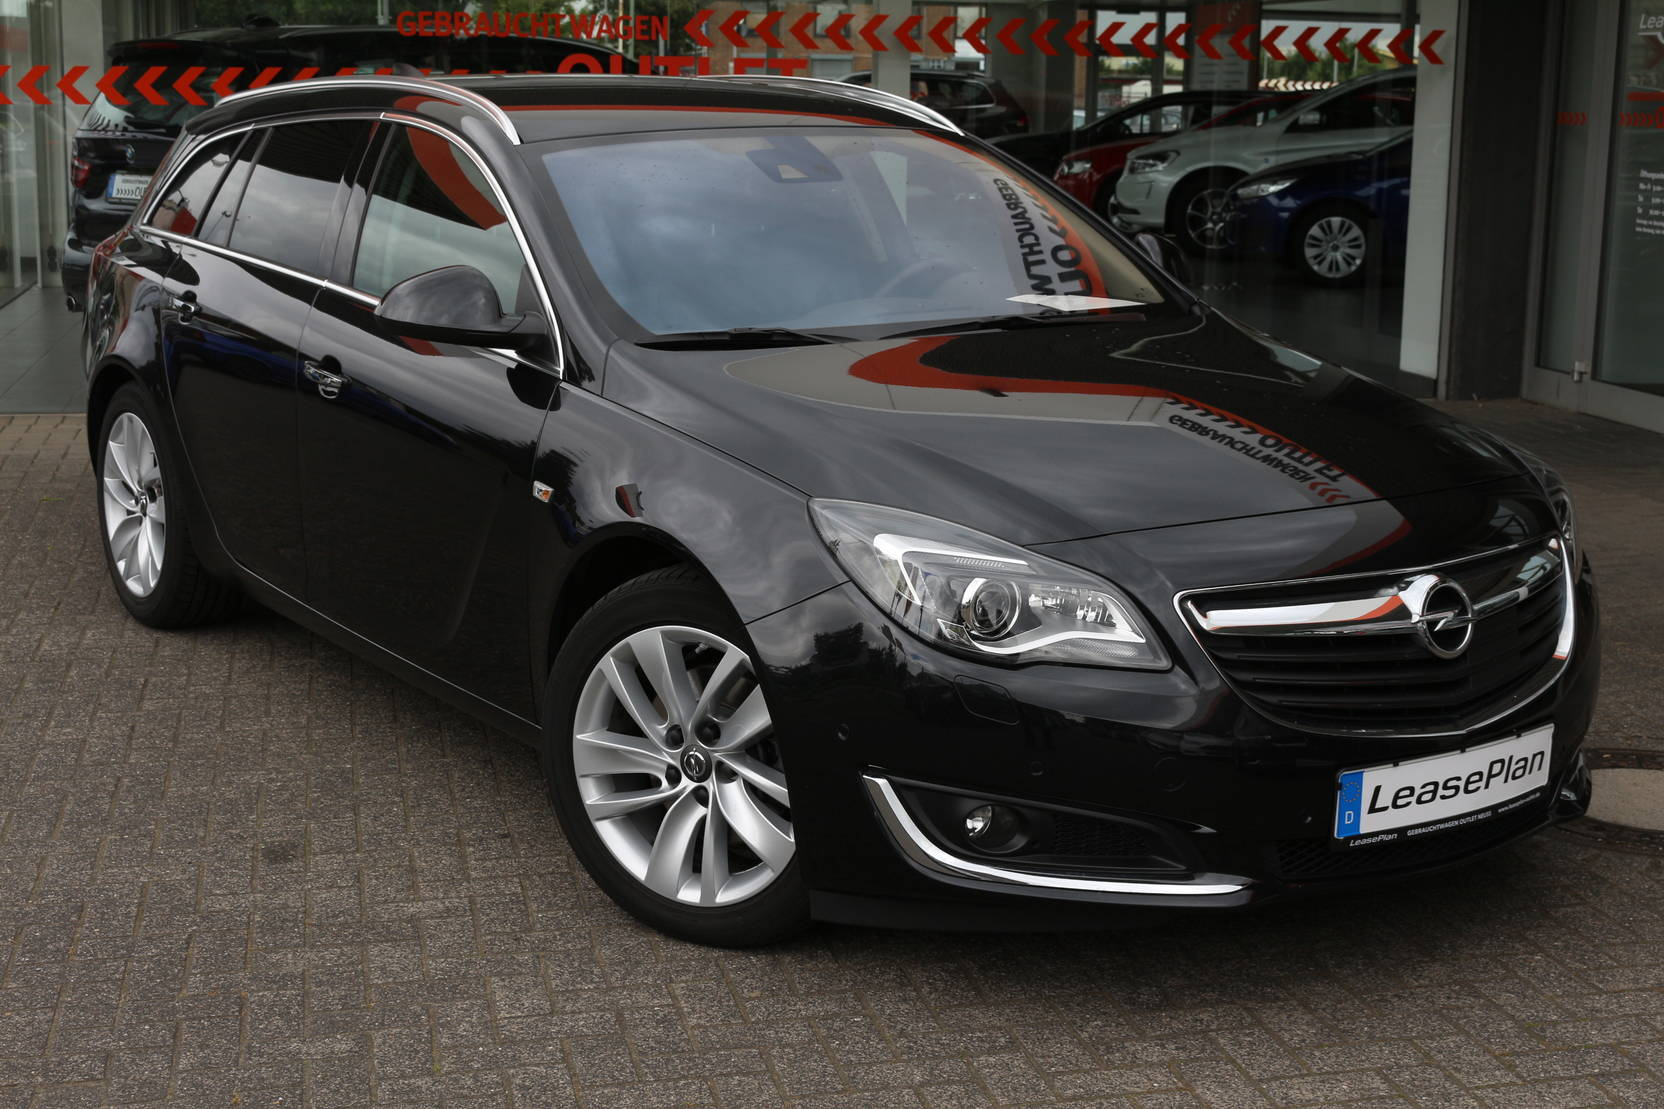 Opel Insignia 2.0 CDTI Sports Tourer ecoFLEX Innovation (627404) detail1